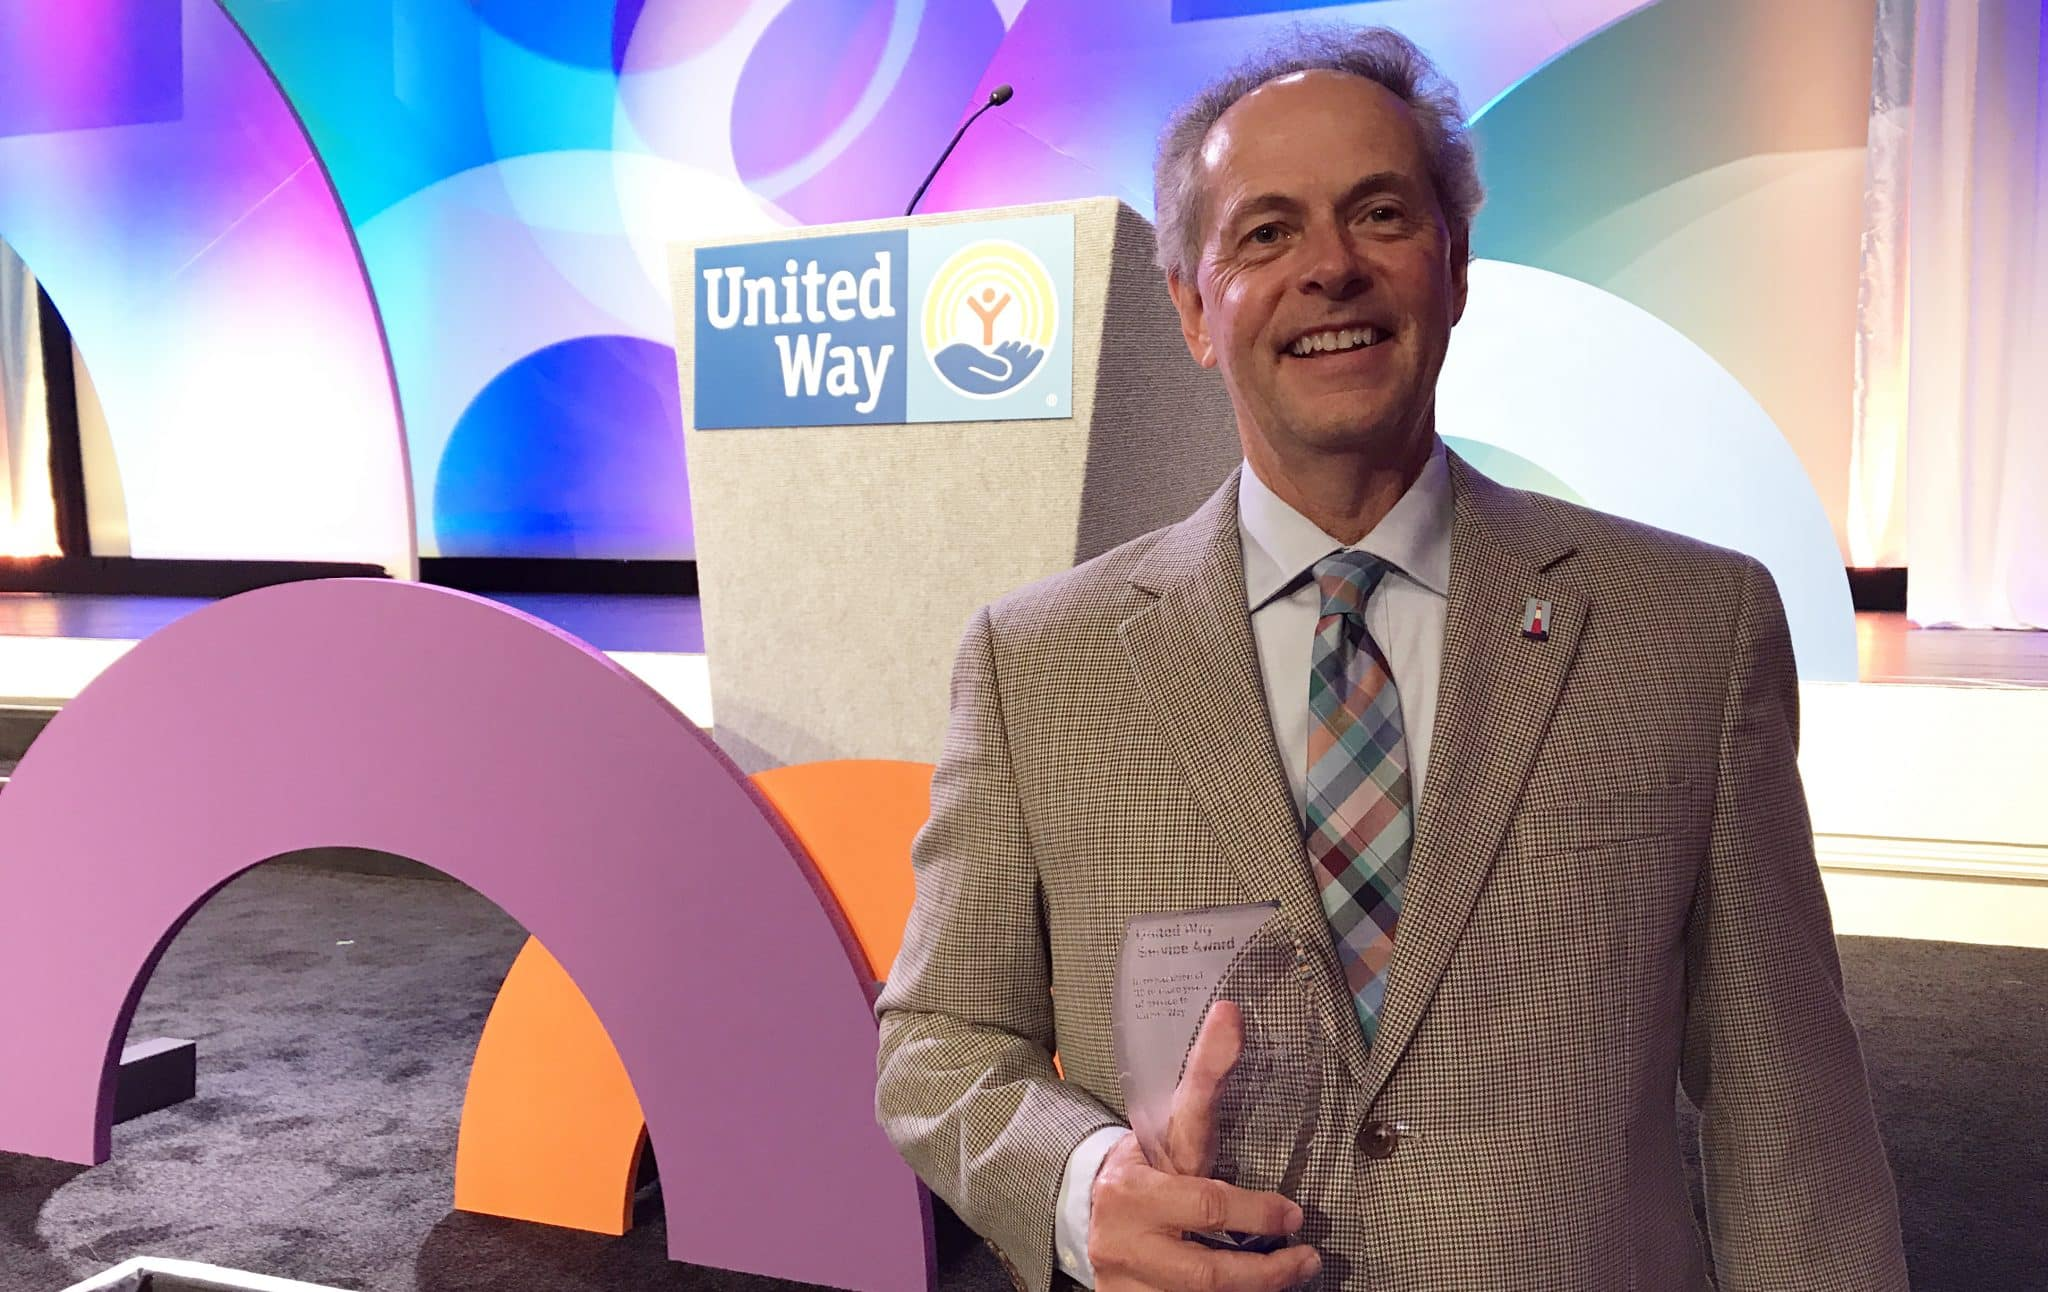 Gregg Schroeder Is Recognized By United Way For 30 Years Of Service